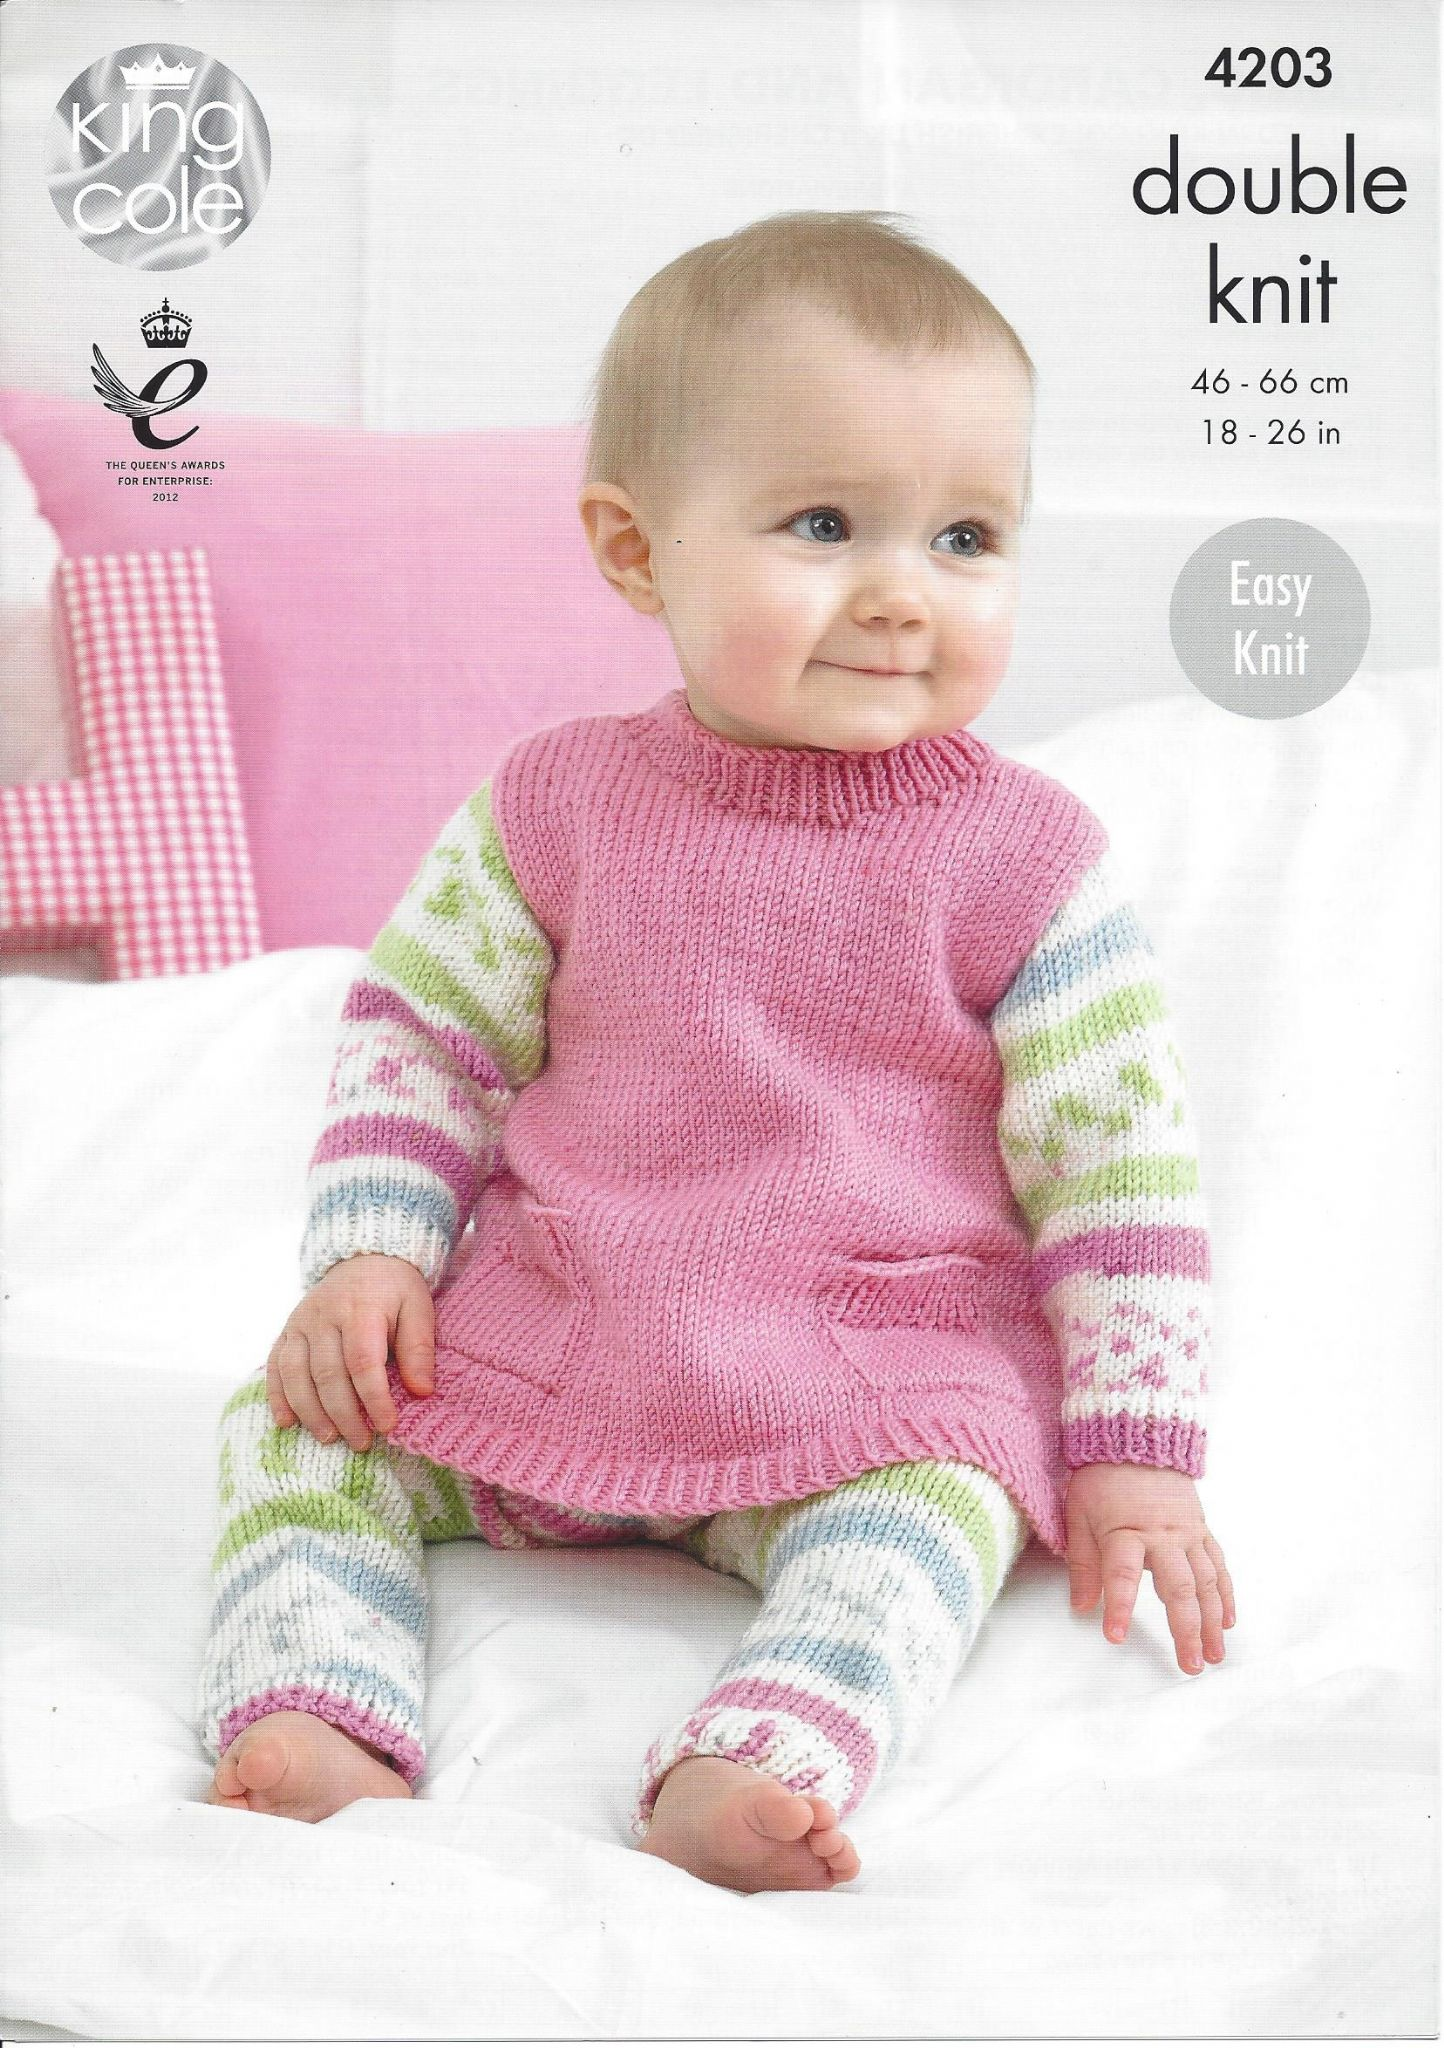 King Cole Baby DK Knitting Pattern - 4203 Tunic Cardigan & Leggings